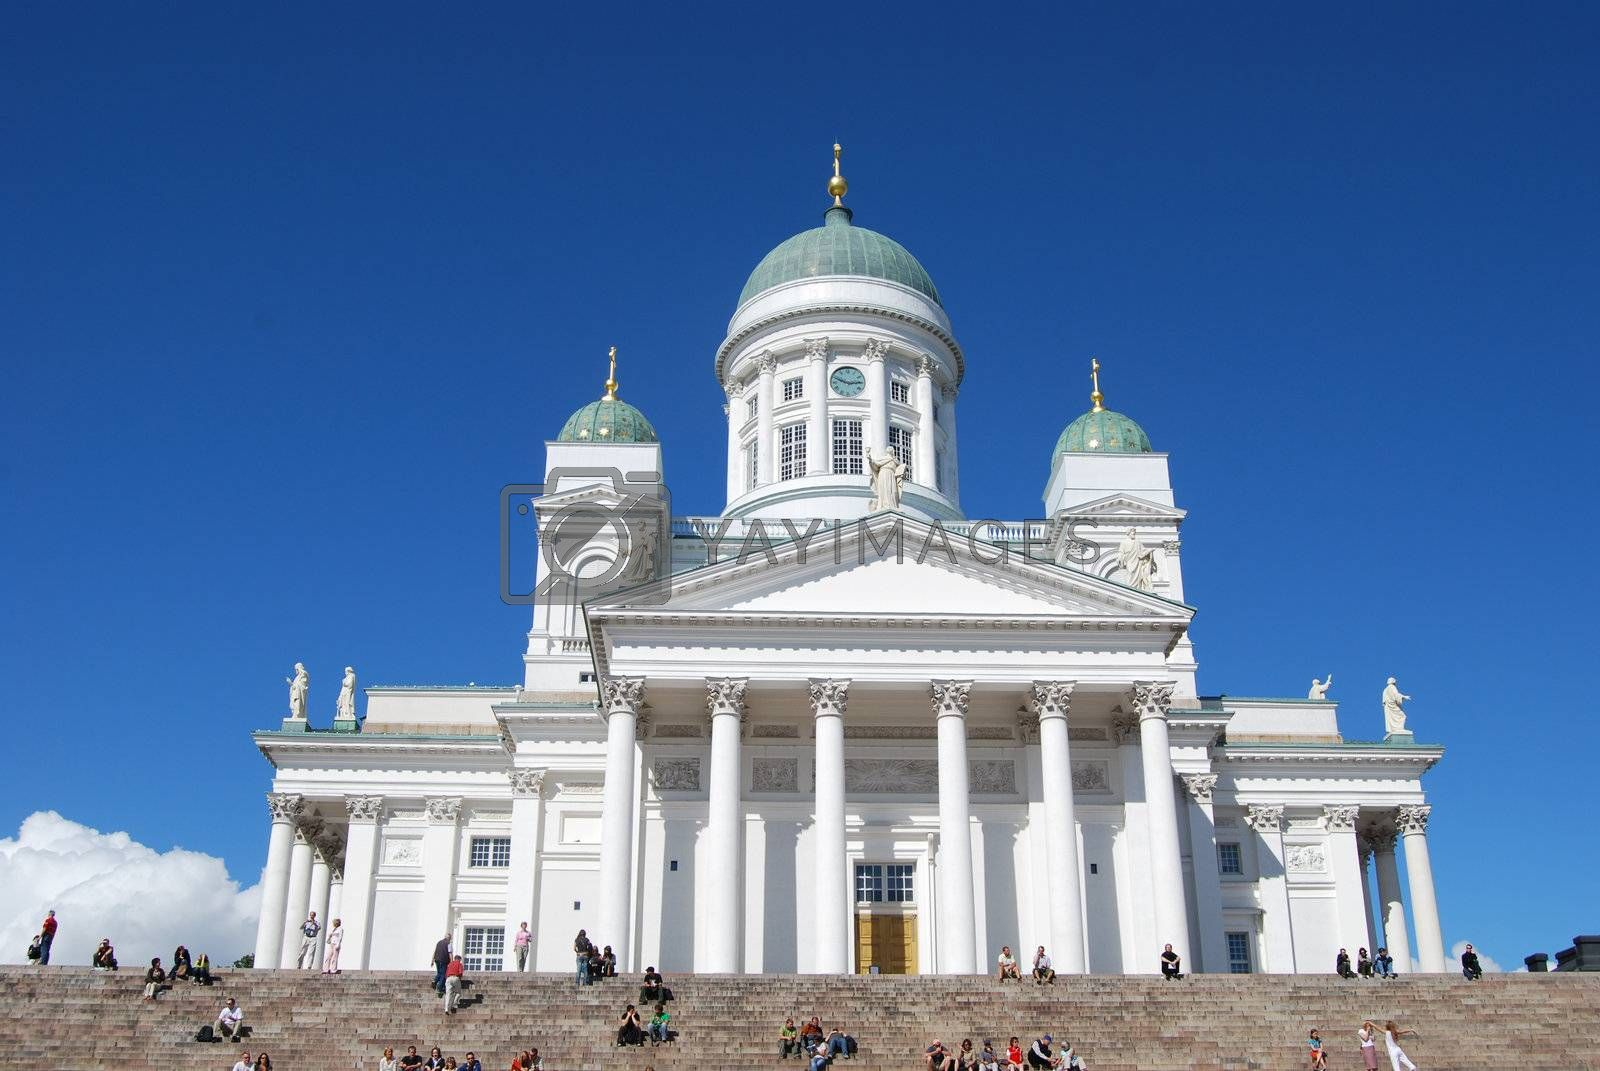 Helsinki cathedral in Finland by windmill